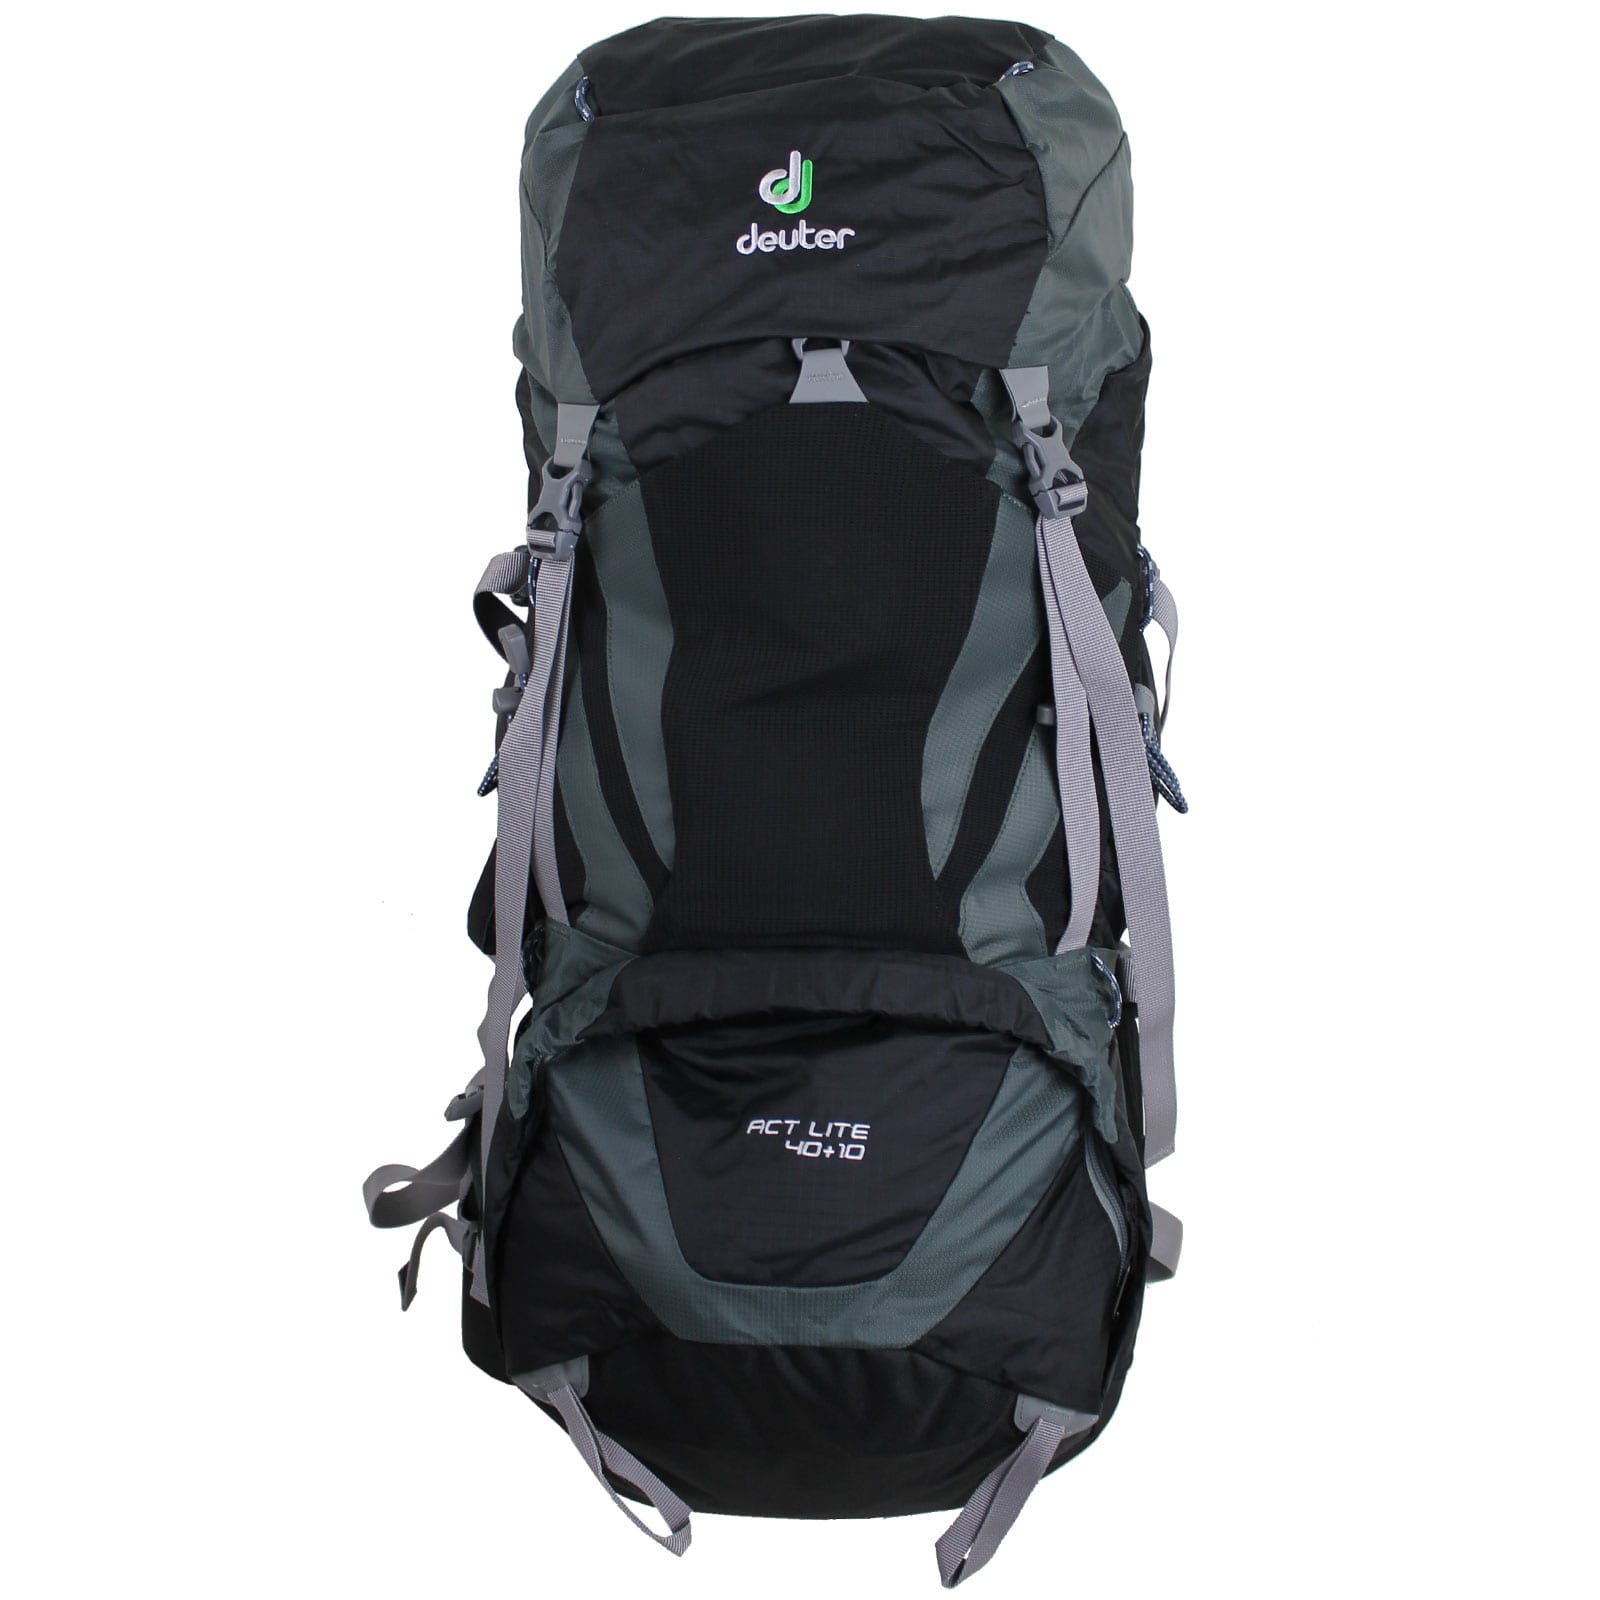 deuter act lite 40 10 trekking rucksack black granite fun sport vision. Black Bedroom Furniture Sets. Home Design Ideas